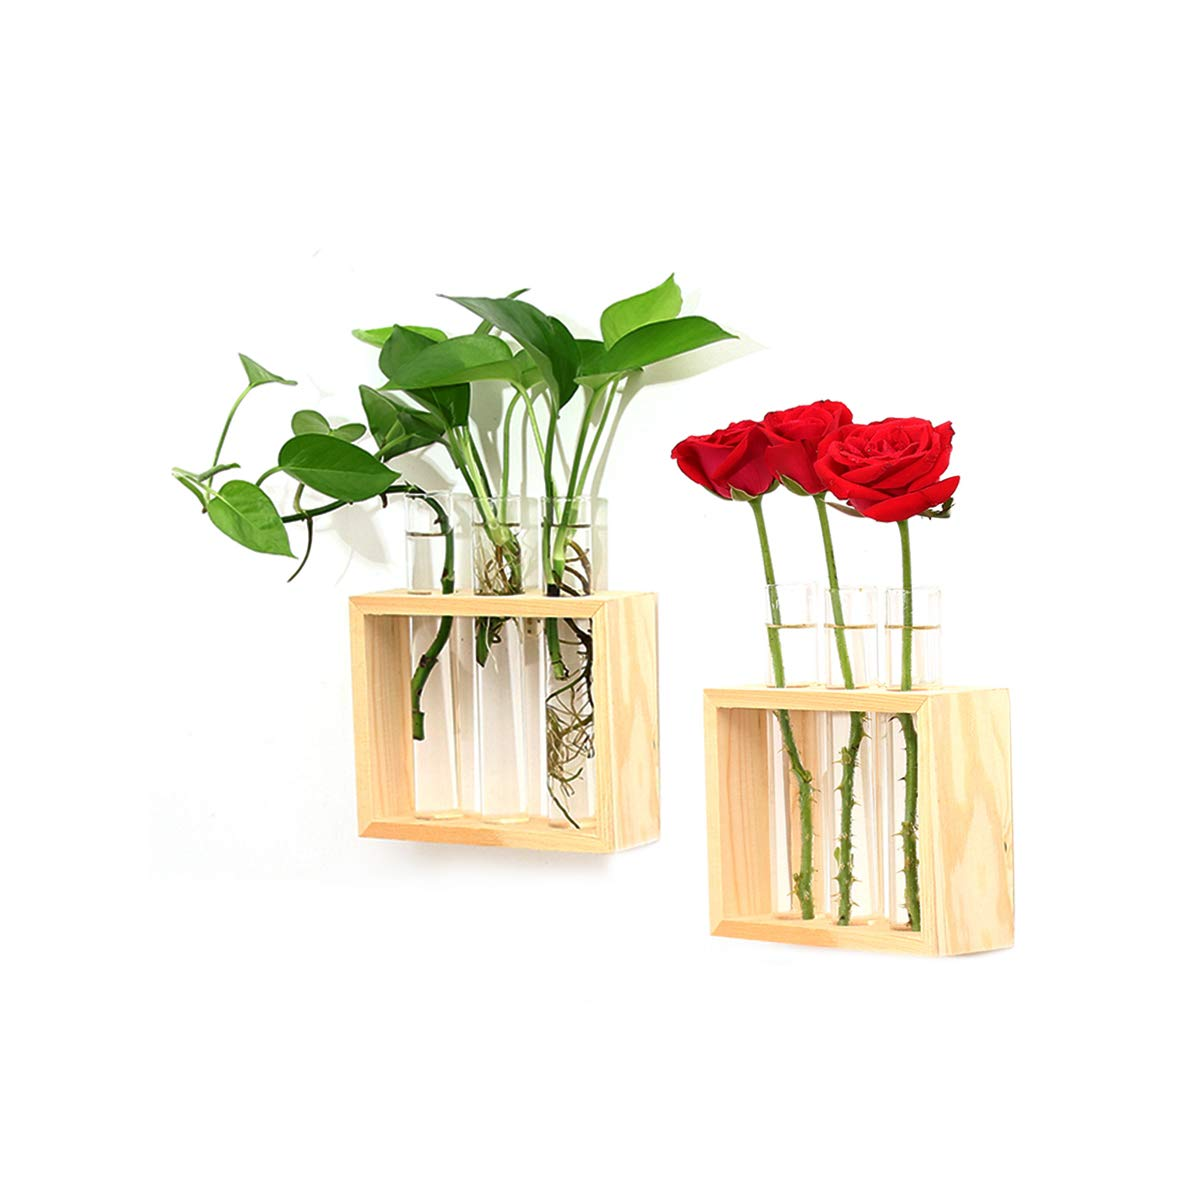 Ivolador Crystal Glass Test Tube Vase in Wooden Stand Flower Pots for Hydroponic Plants Home Garden Decoration 009